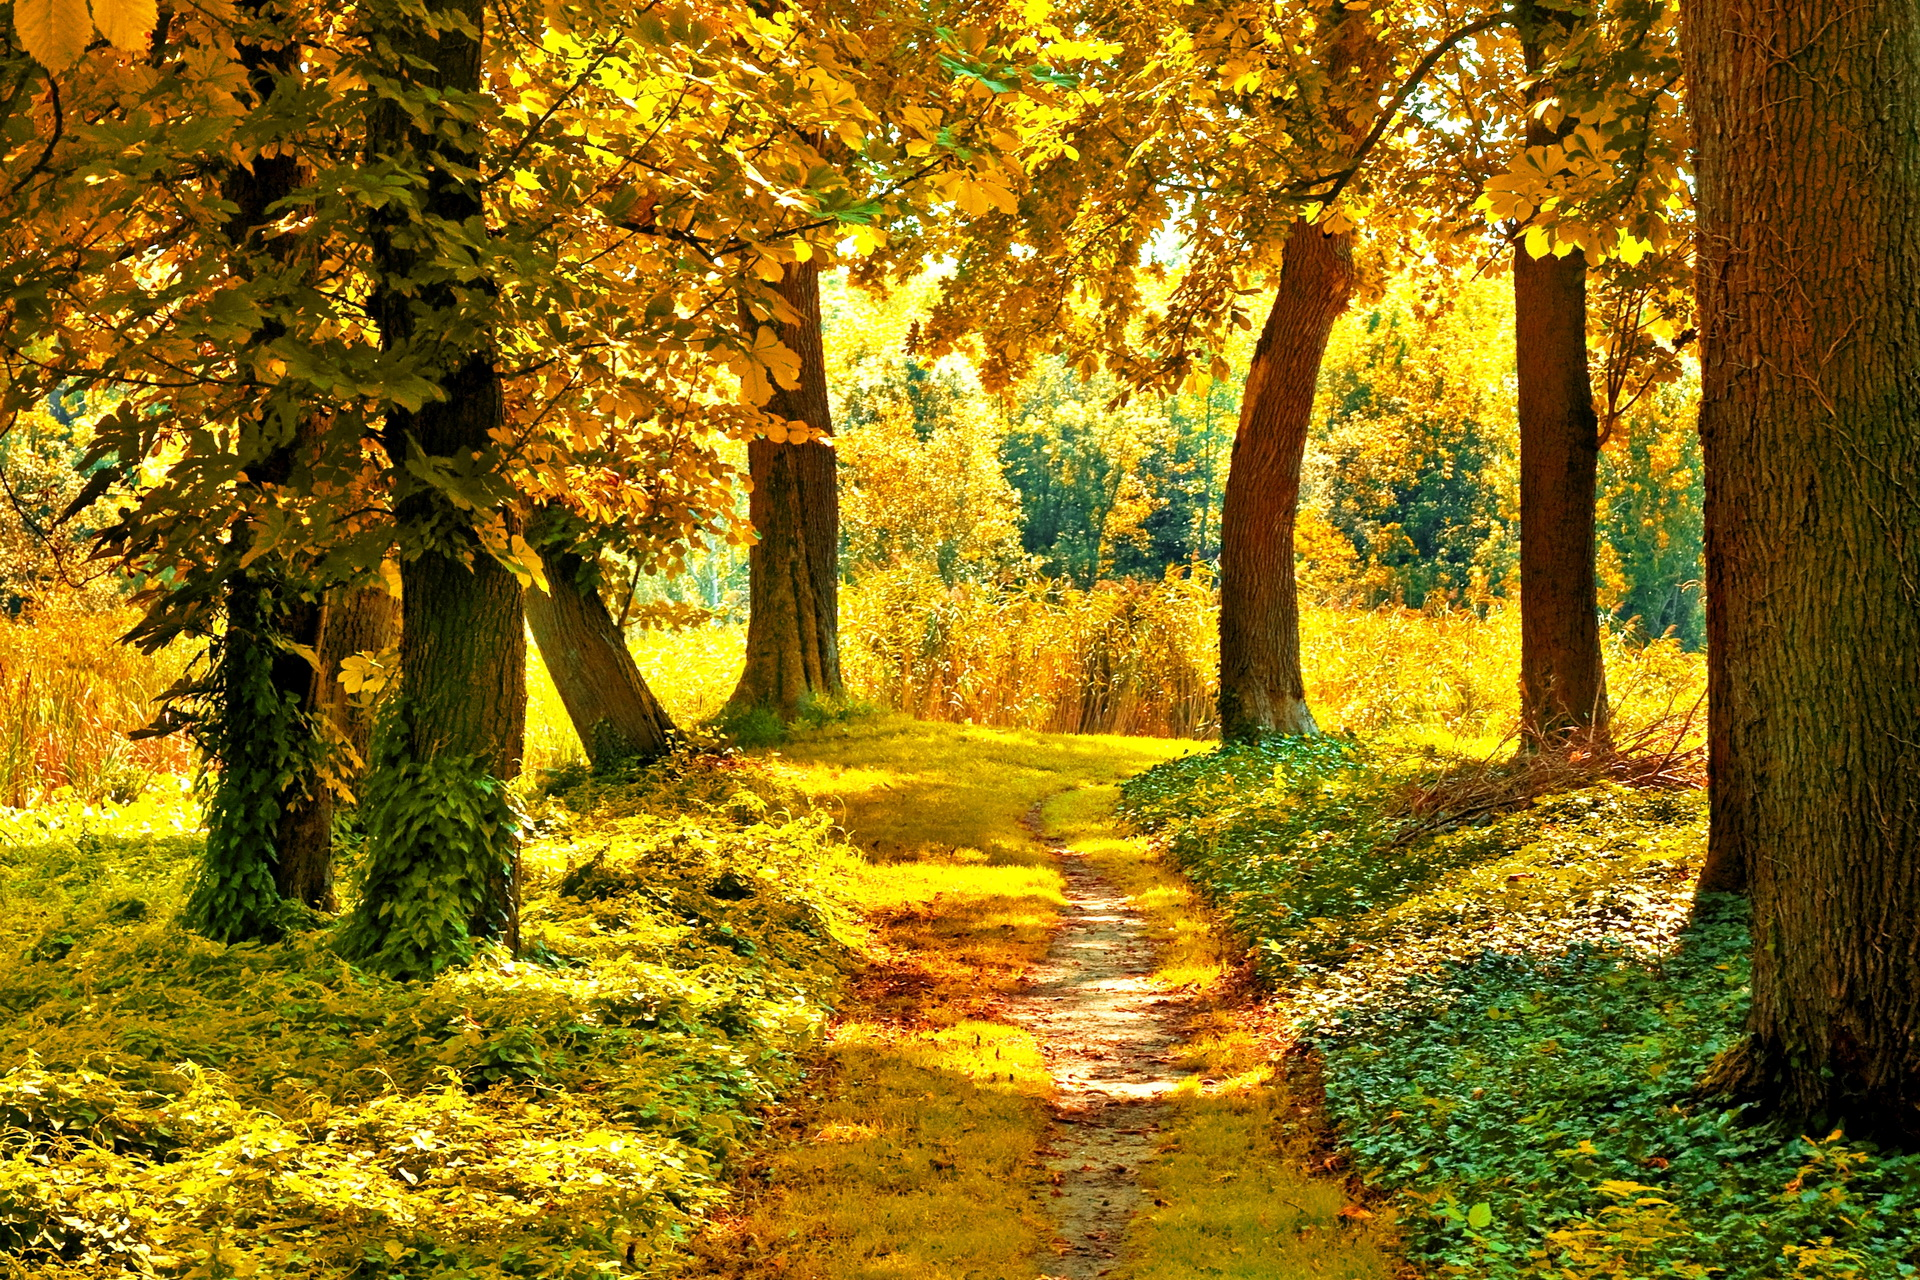 Nature landscapes trees forest path pathway autumn fall for Boden desktop